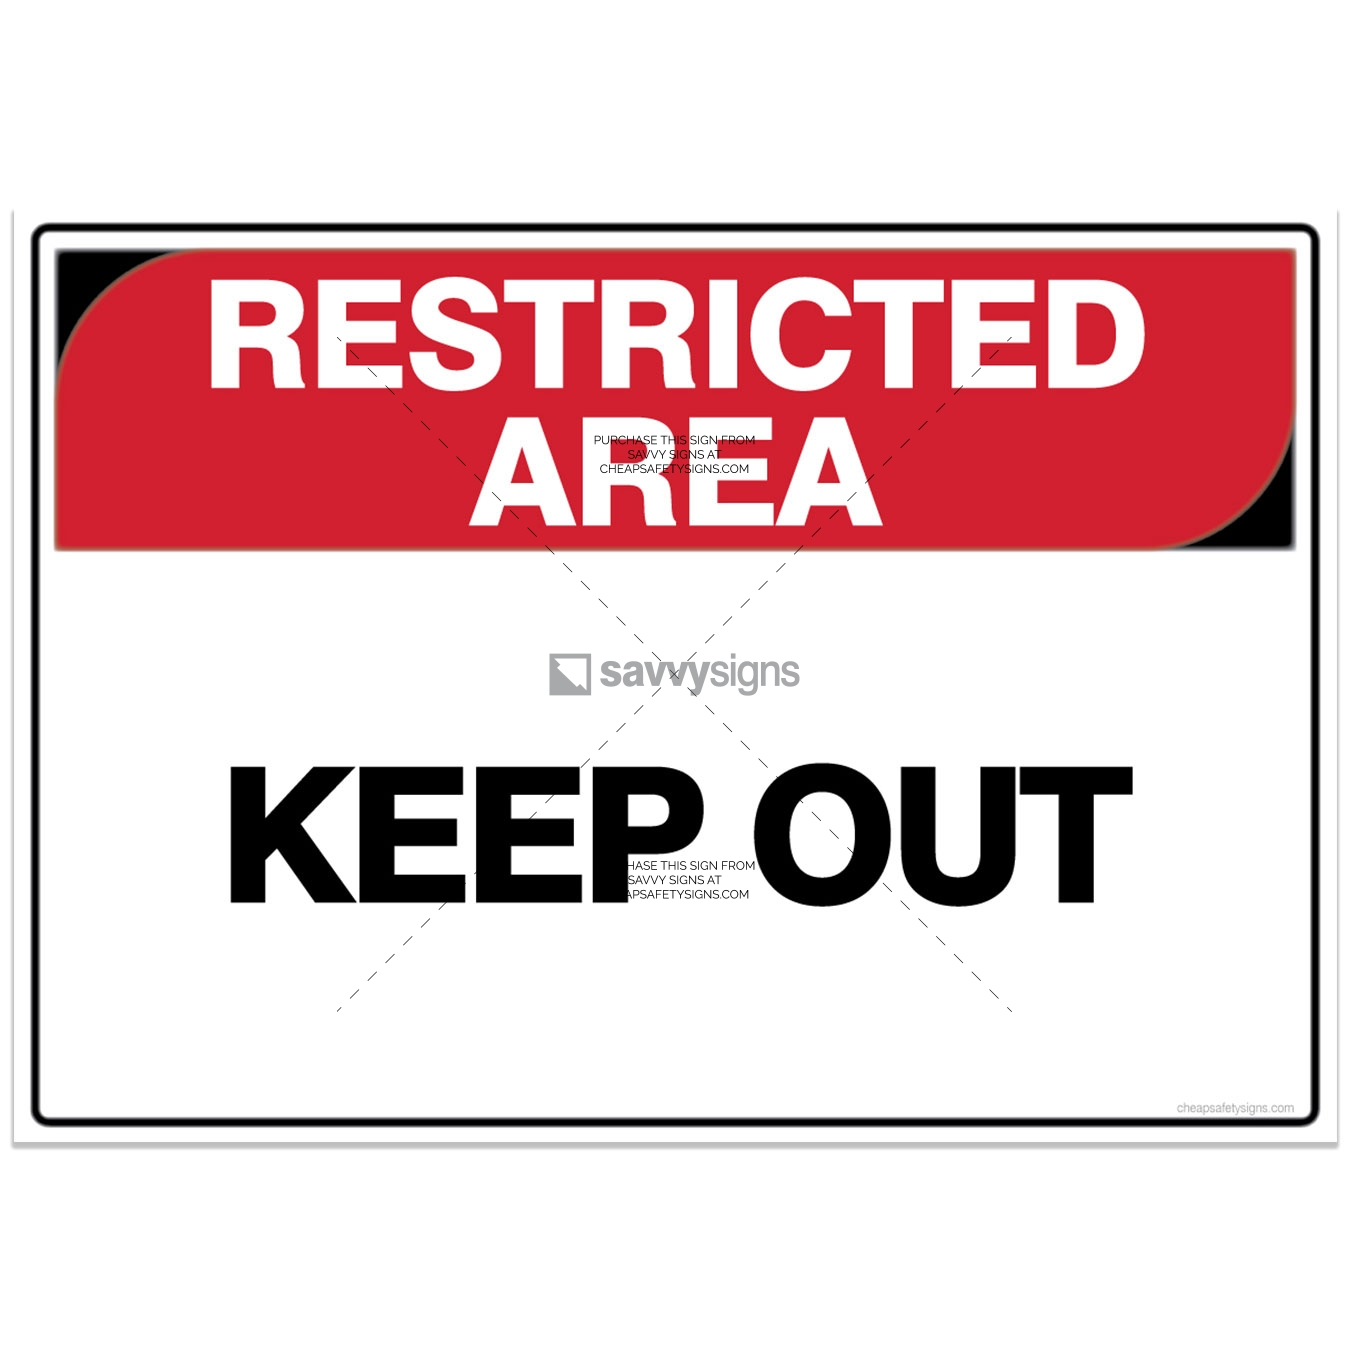 SSRES3019-RESTRICTED-AREA-Workplace-Safety-Signs_Savvy-Signs_v2